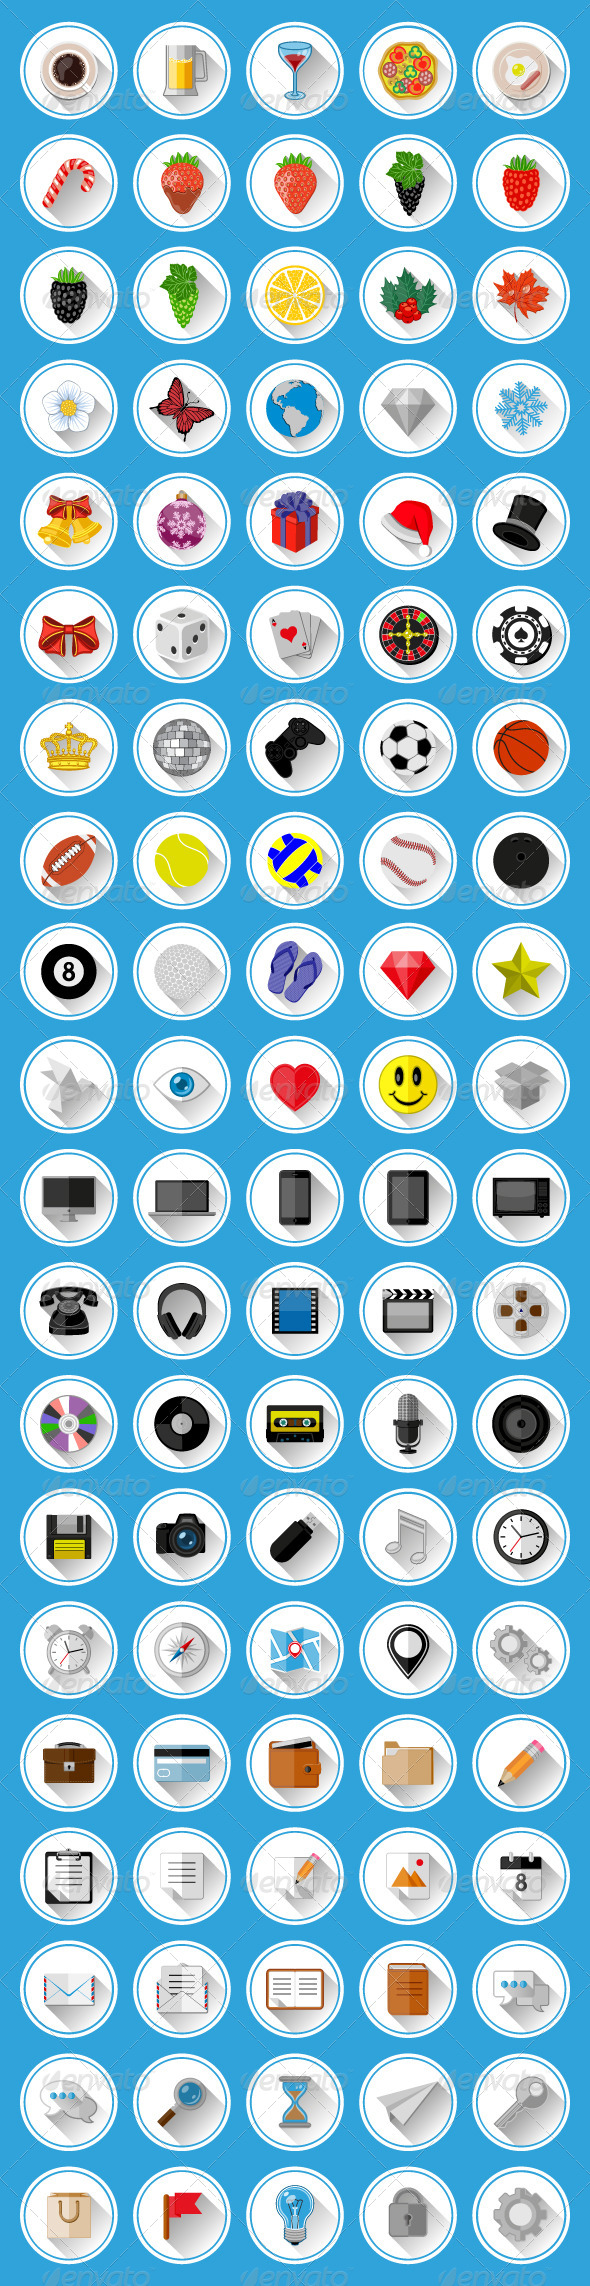 Flat Icons and Pictograms Set - Web Icons